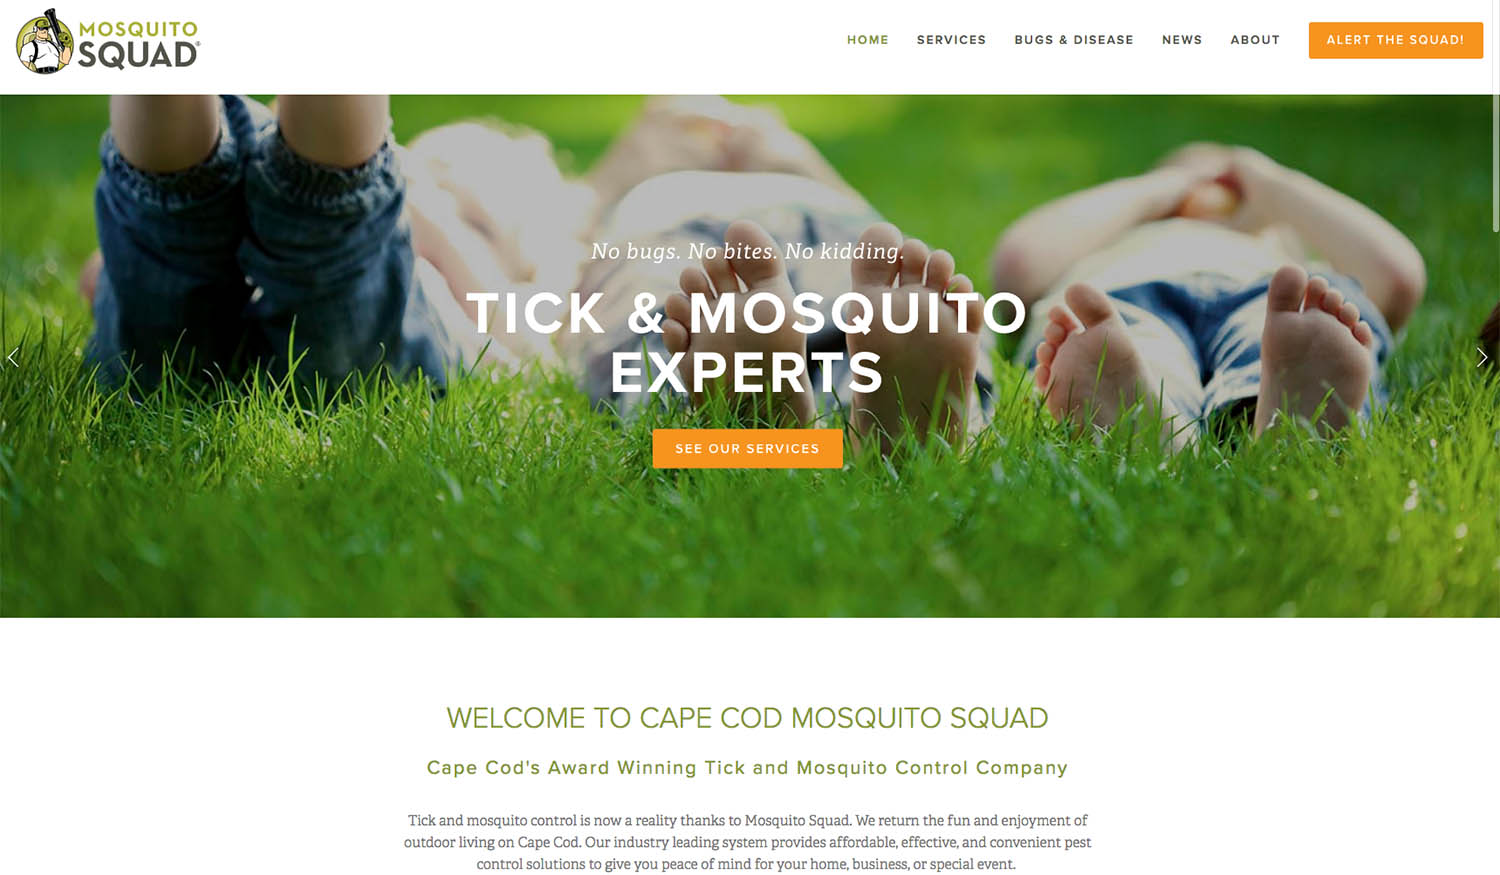 Cape Cod Mosquito Squad wanted to get found on Google in every town it serves.  - CAPECODMOSQUITOSQUAD.COMMenadena helped Cape Cod Mosquito Squad get ranked on Google page one for more than 20 locations on the Cape from Bourne to Provincetown, Martha's Vineyard to Nantucket. Menadena services used:Google AdWordsLocal FoundationSquarespace website design